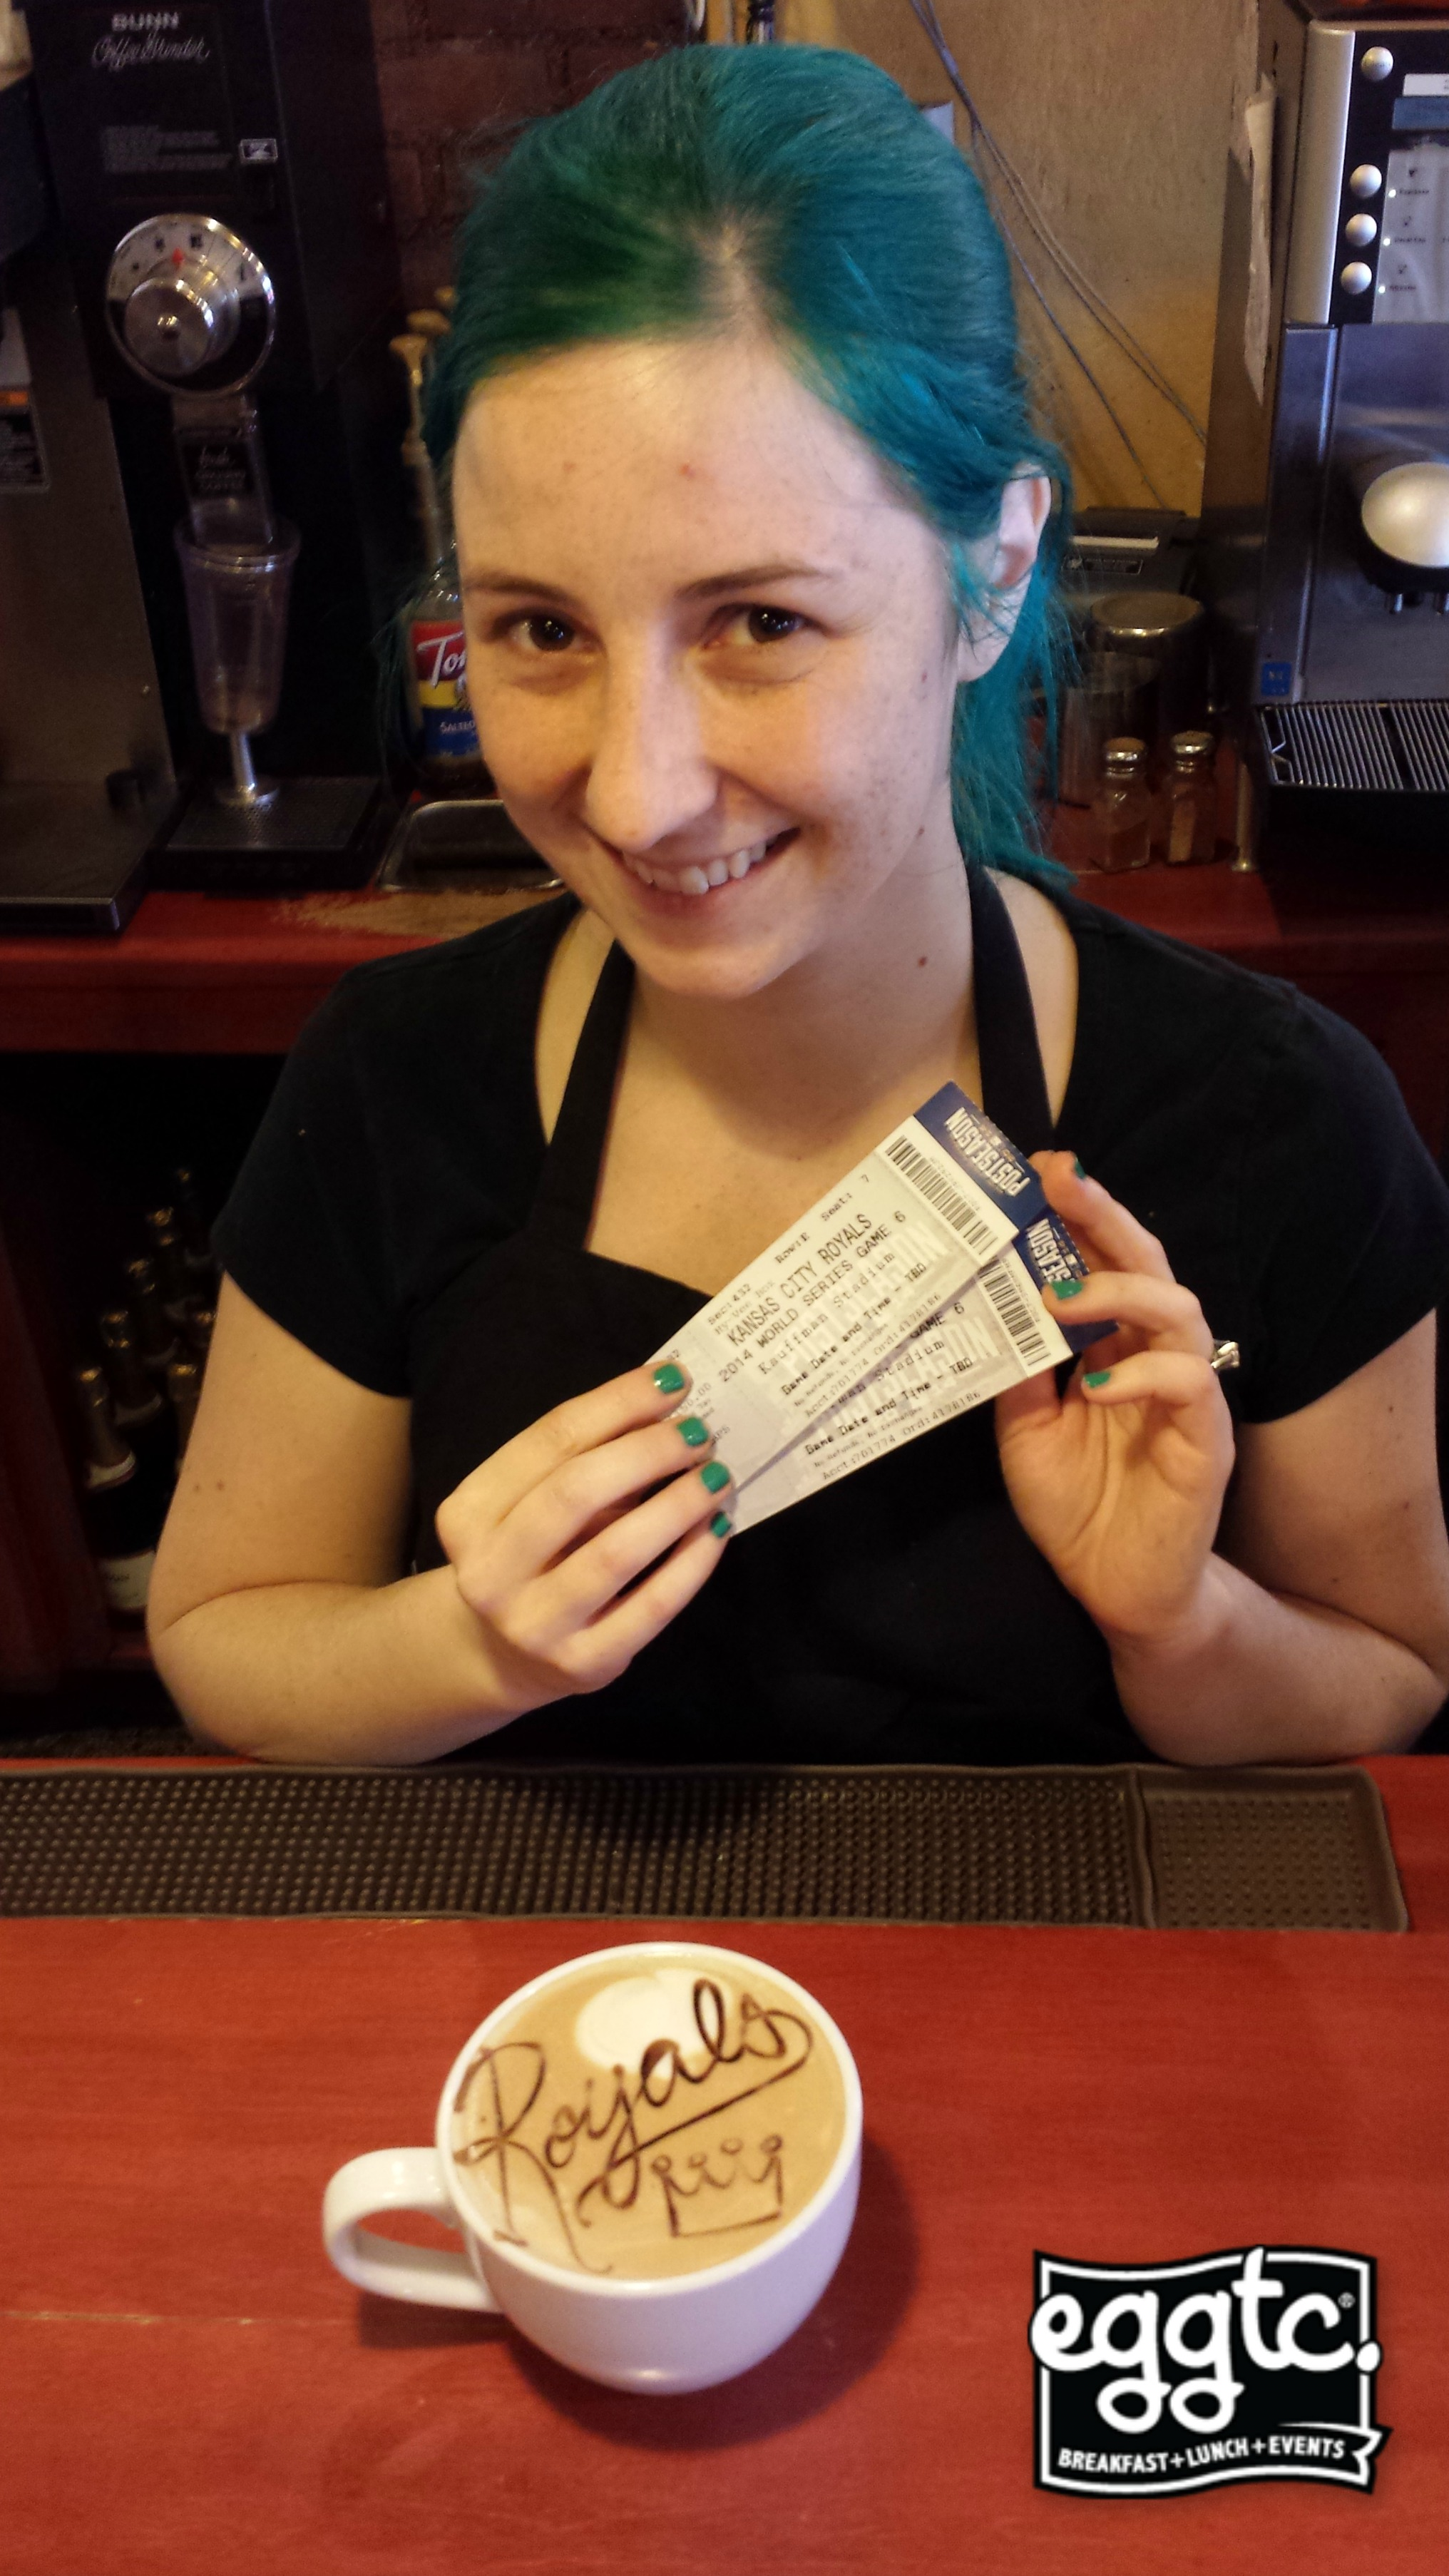 Josh Willingham Surprises eggtc. Barista with World Series Tickets!